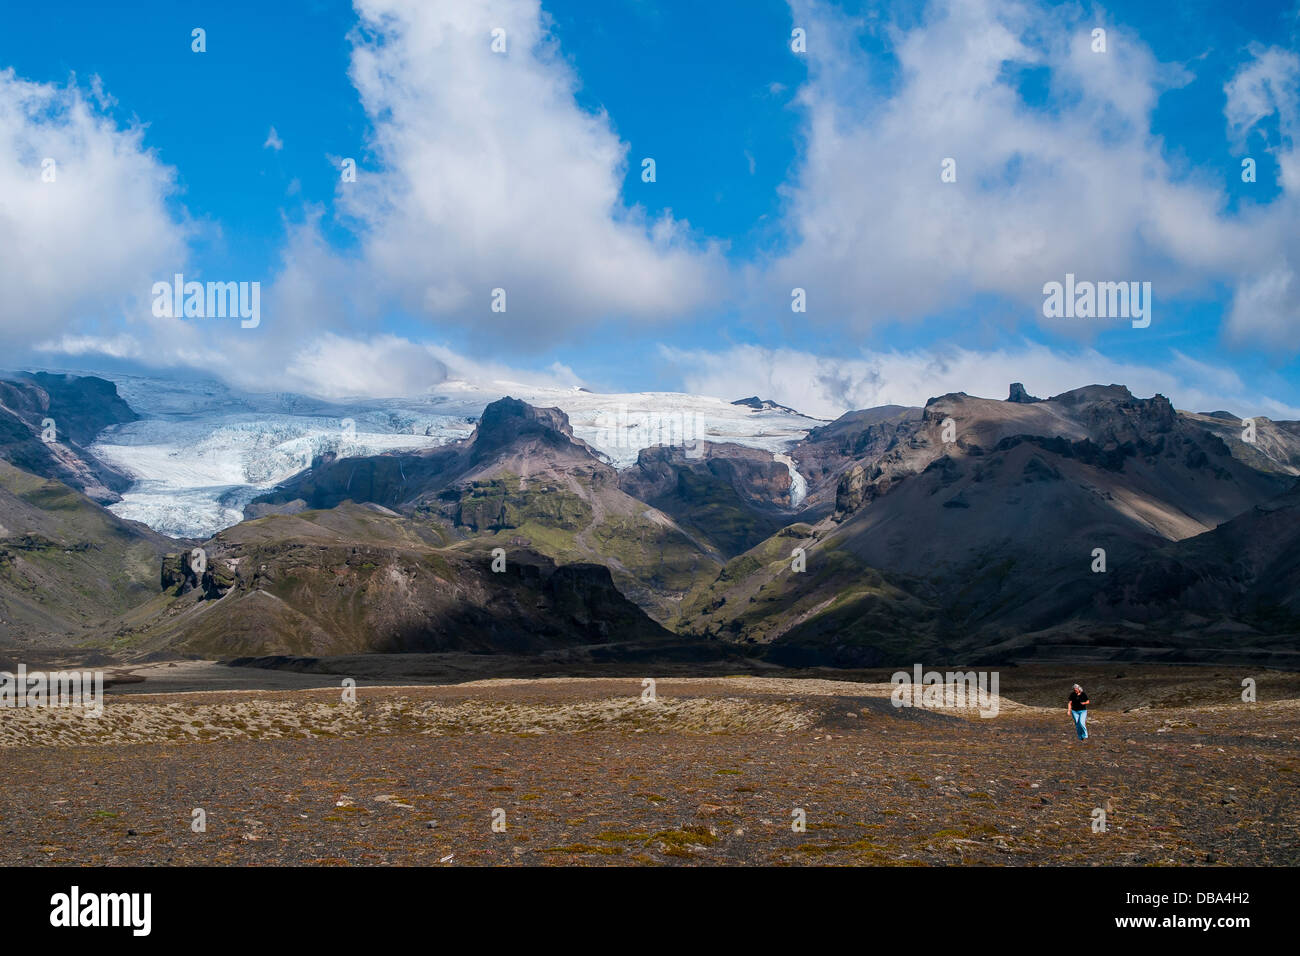 Tourists photographing the glacier tongues covering the Eyjafjallajökull volcano, which erupted in 2010. Iceland, - Stock Image